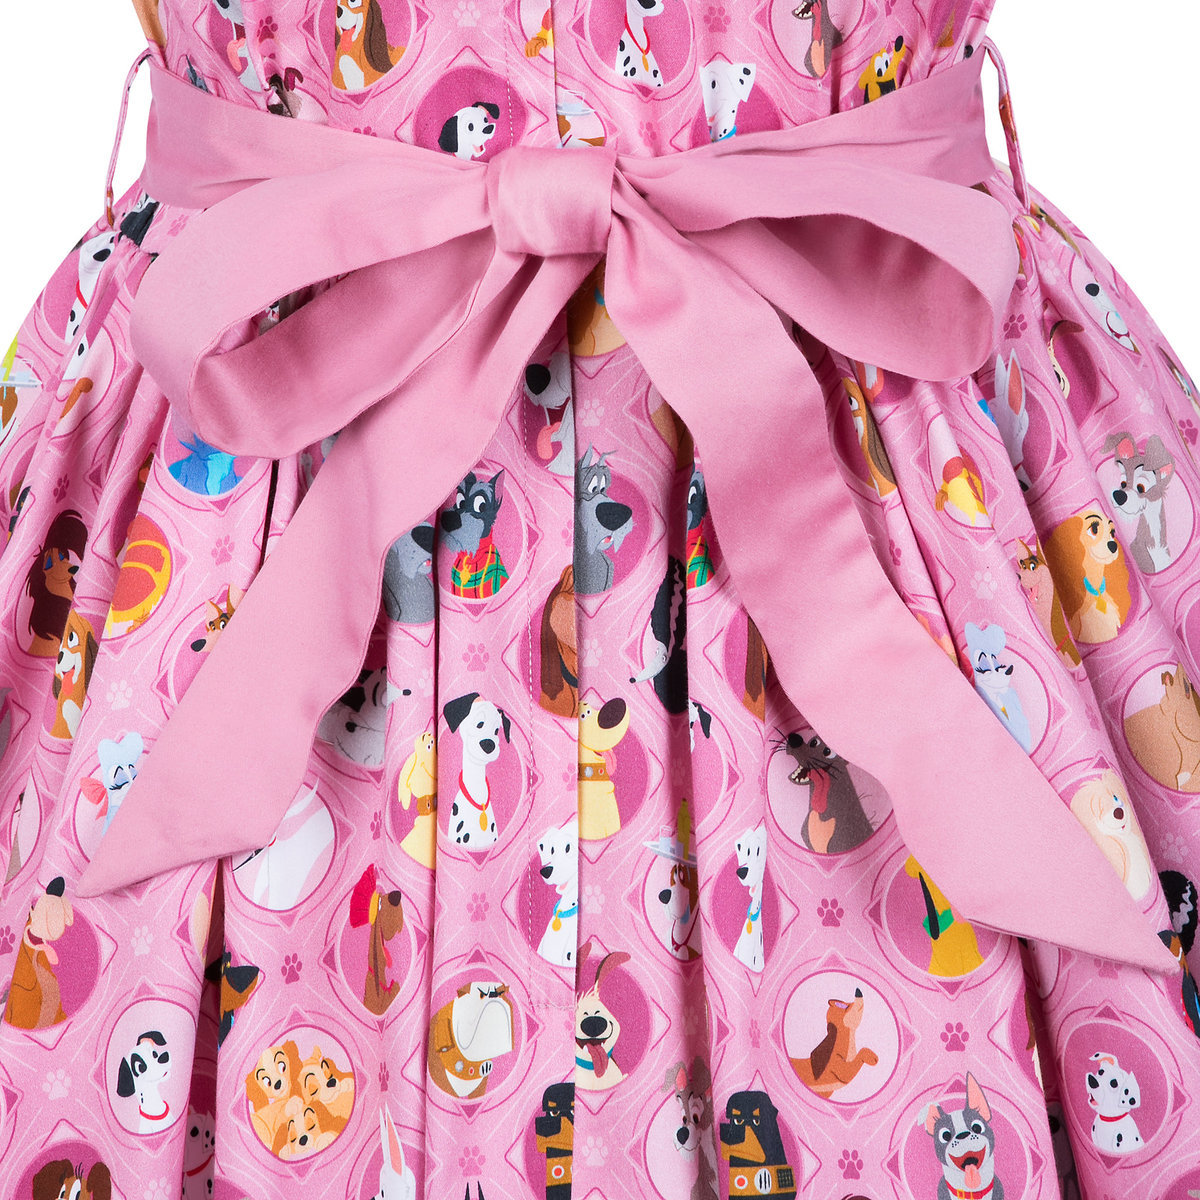 4188c9cde Product Image of Disney Dogs Dress for Women # 4